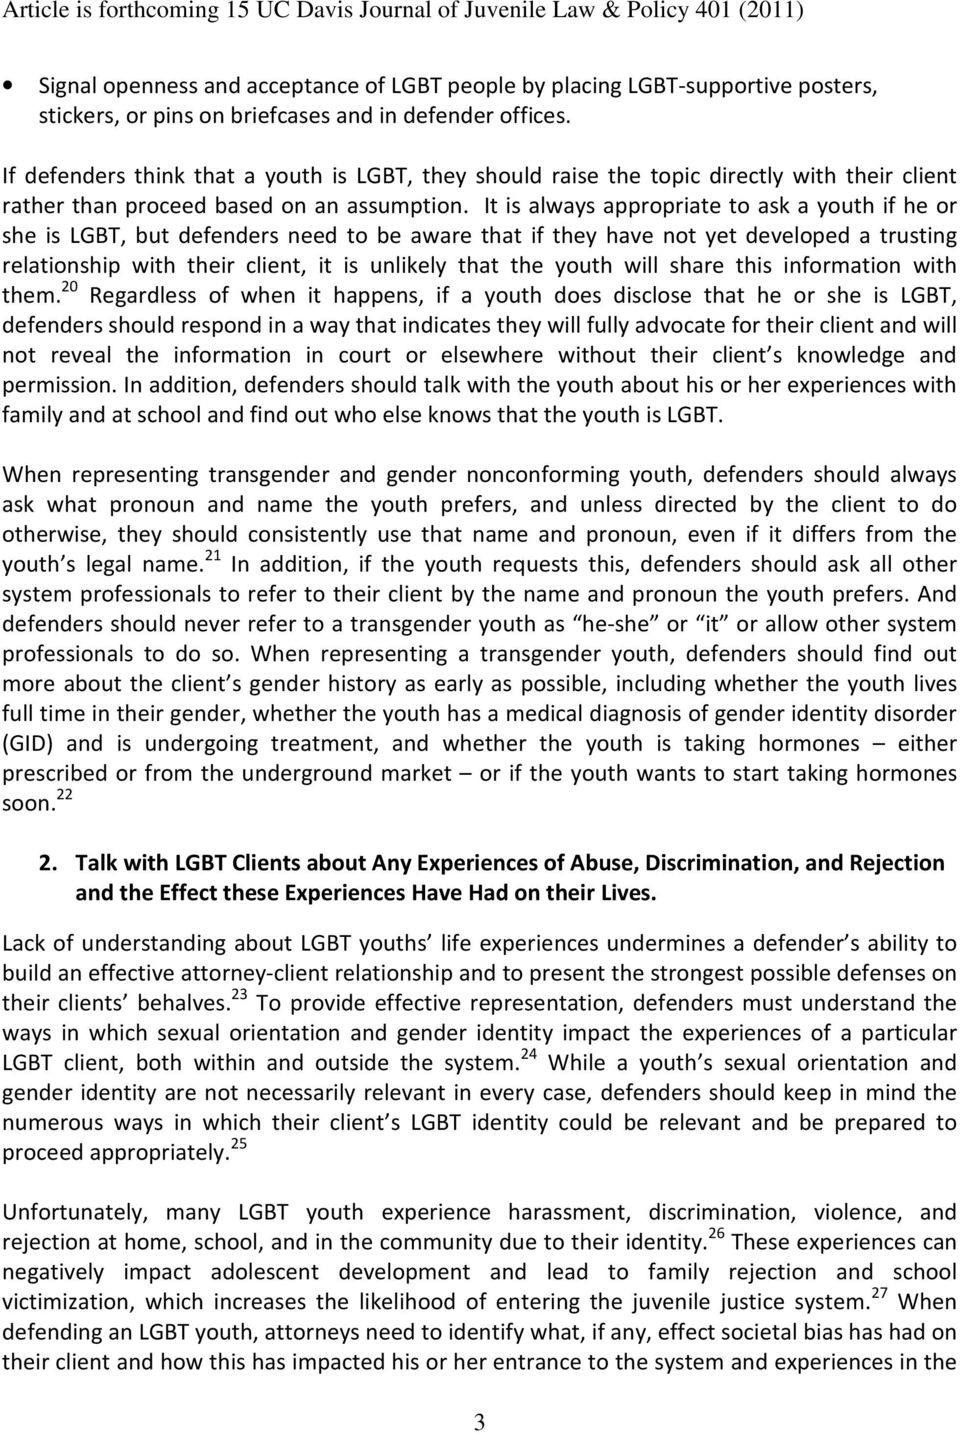 It is always appropriate to ask a youth if he or she is LGBT, but defenders need to be aware that if they have not yet developed a trusting relationship with their client, it is unlikely that the